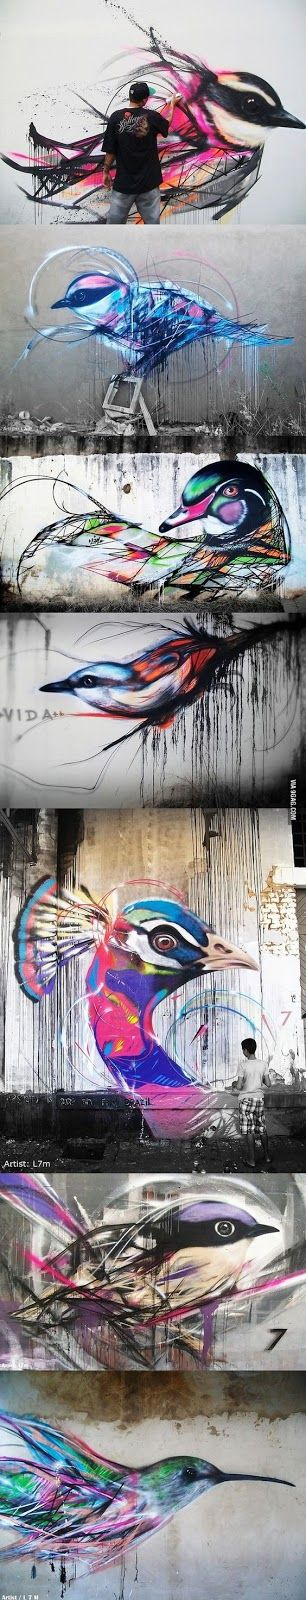 Art for oil paint, watercolor, drawing, anime and graffiti pictures.